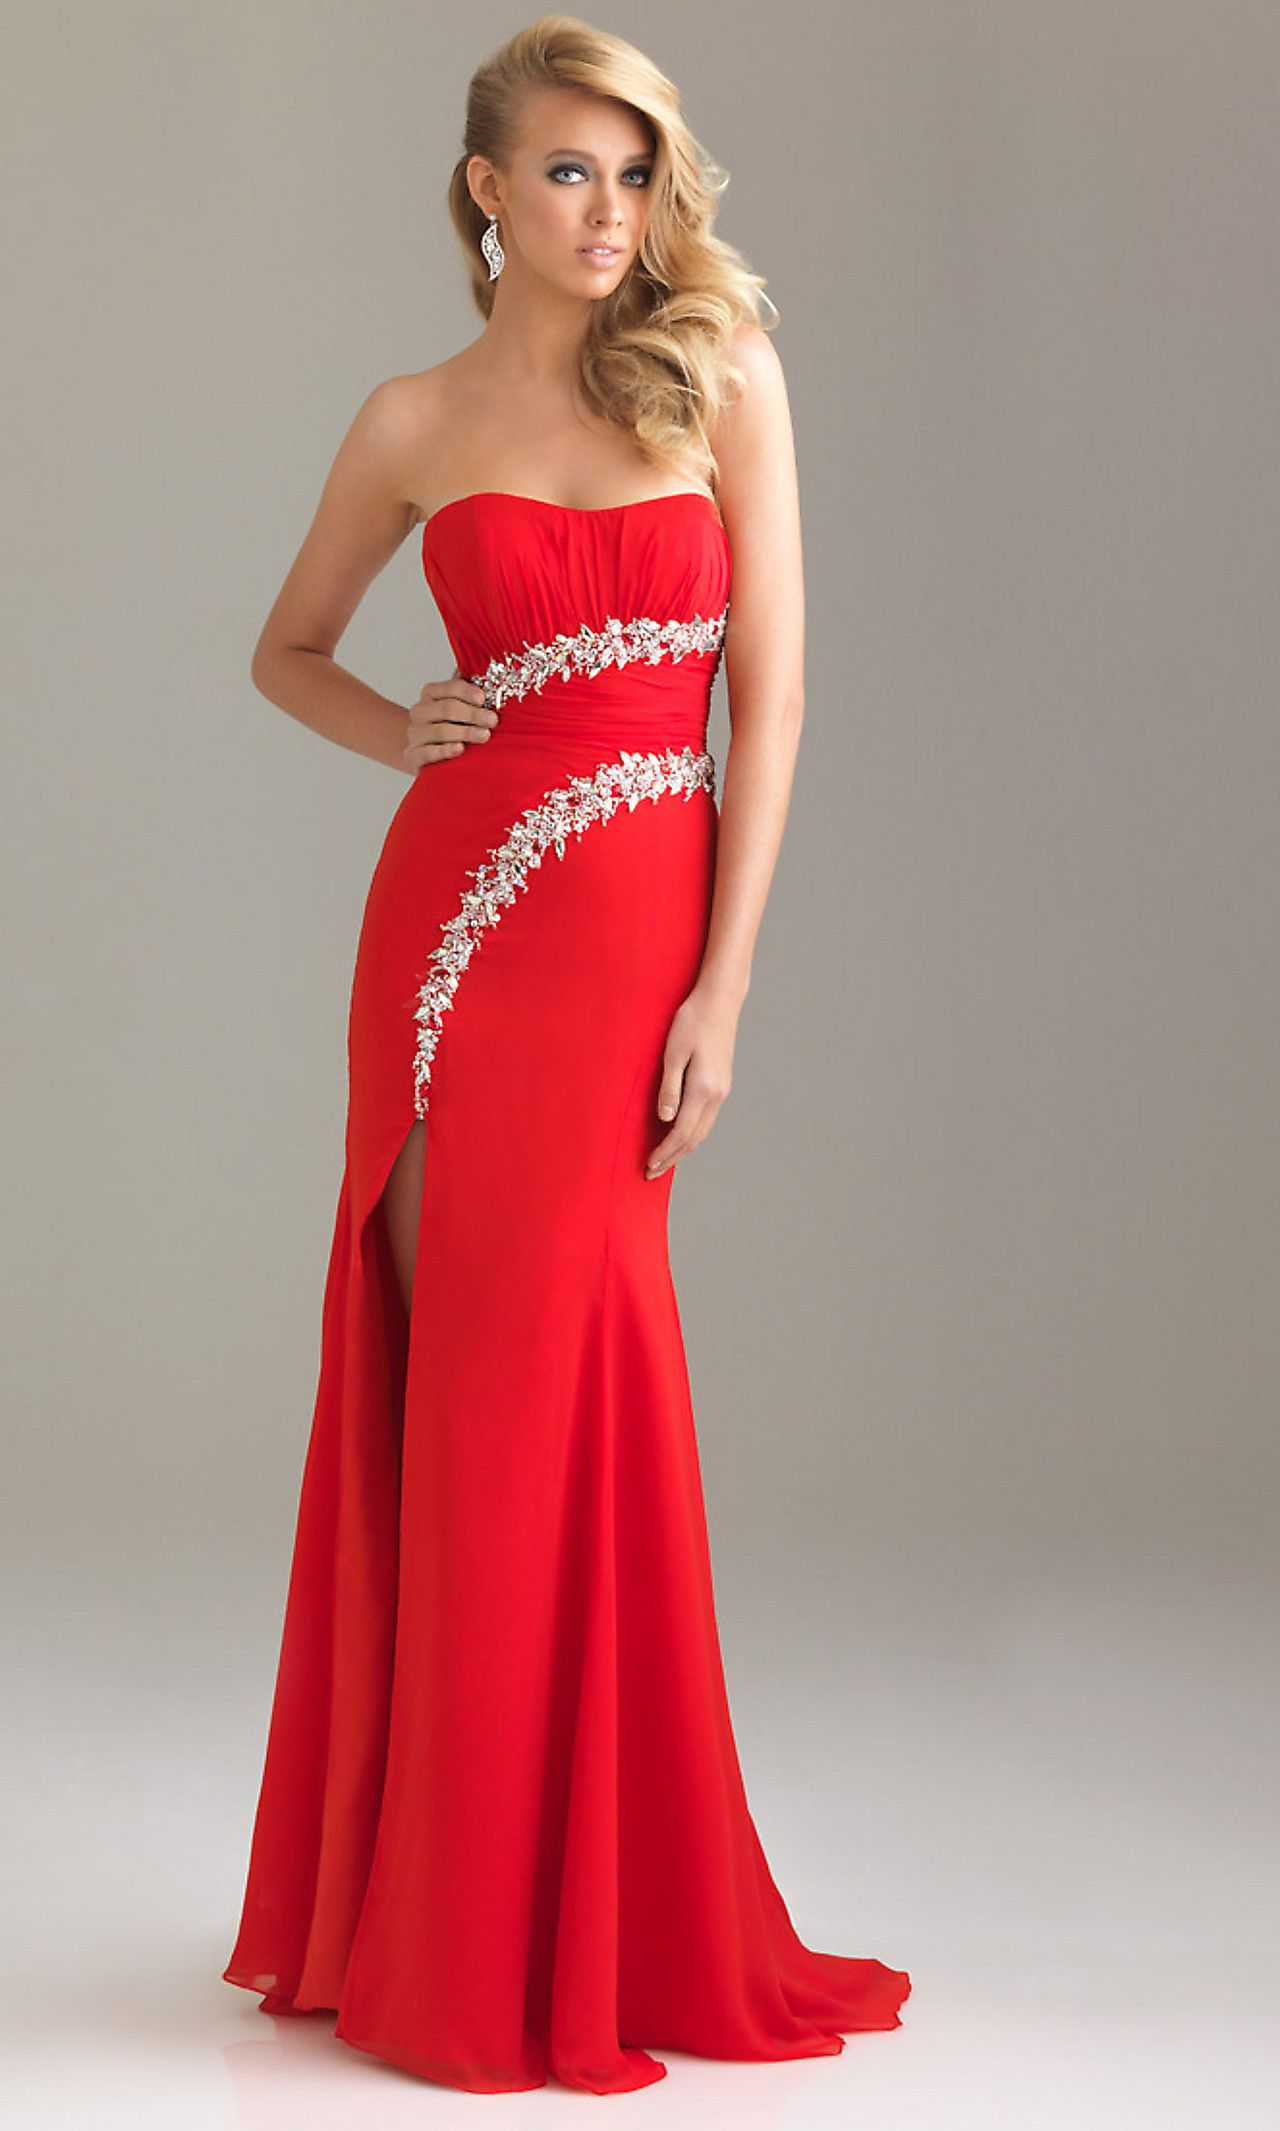 Red prom dress prom dress pinterest prom night moves and gowns